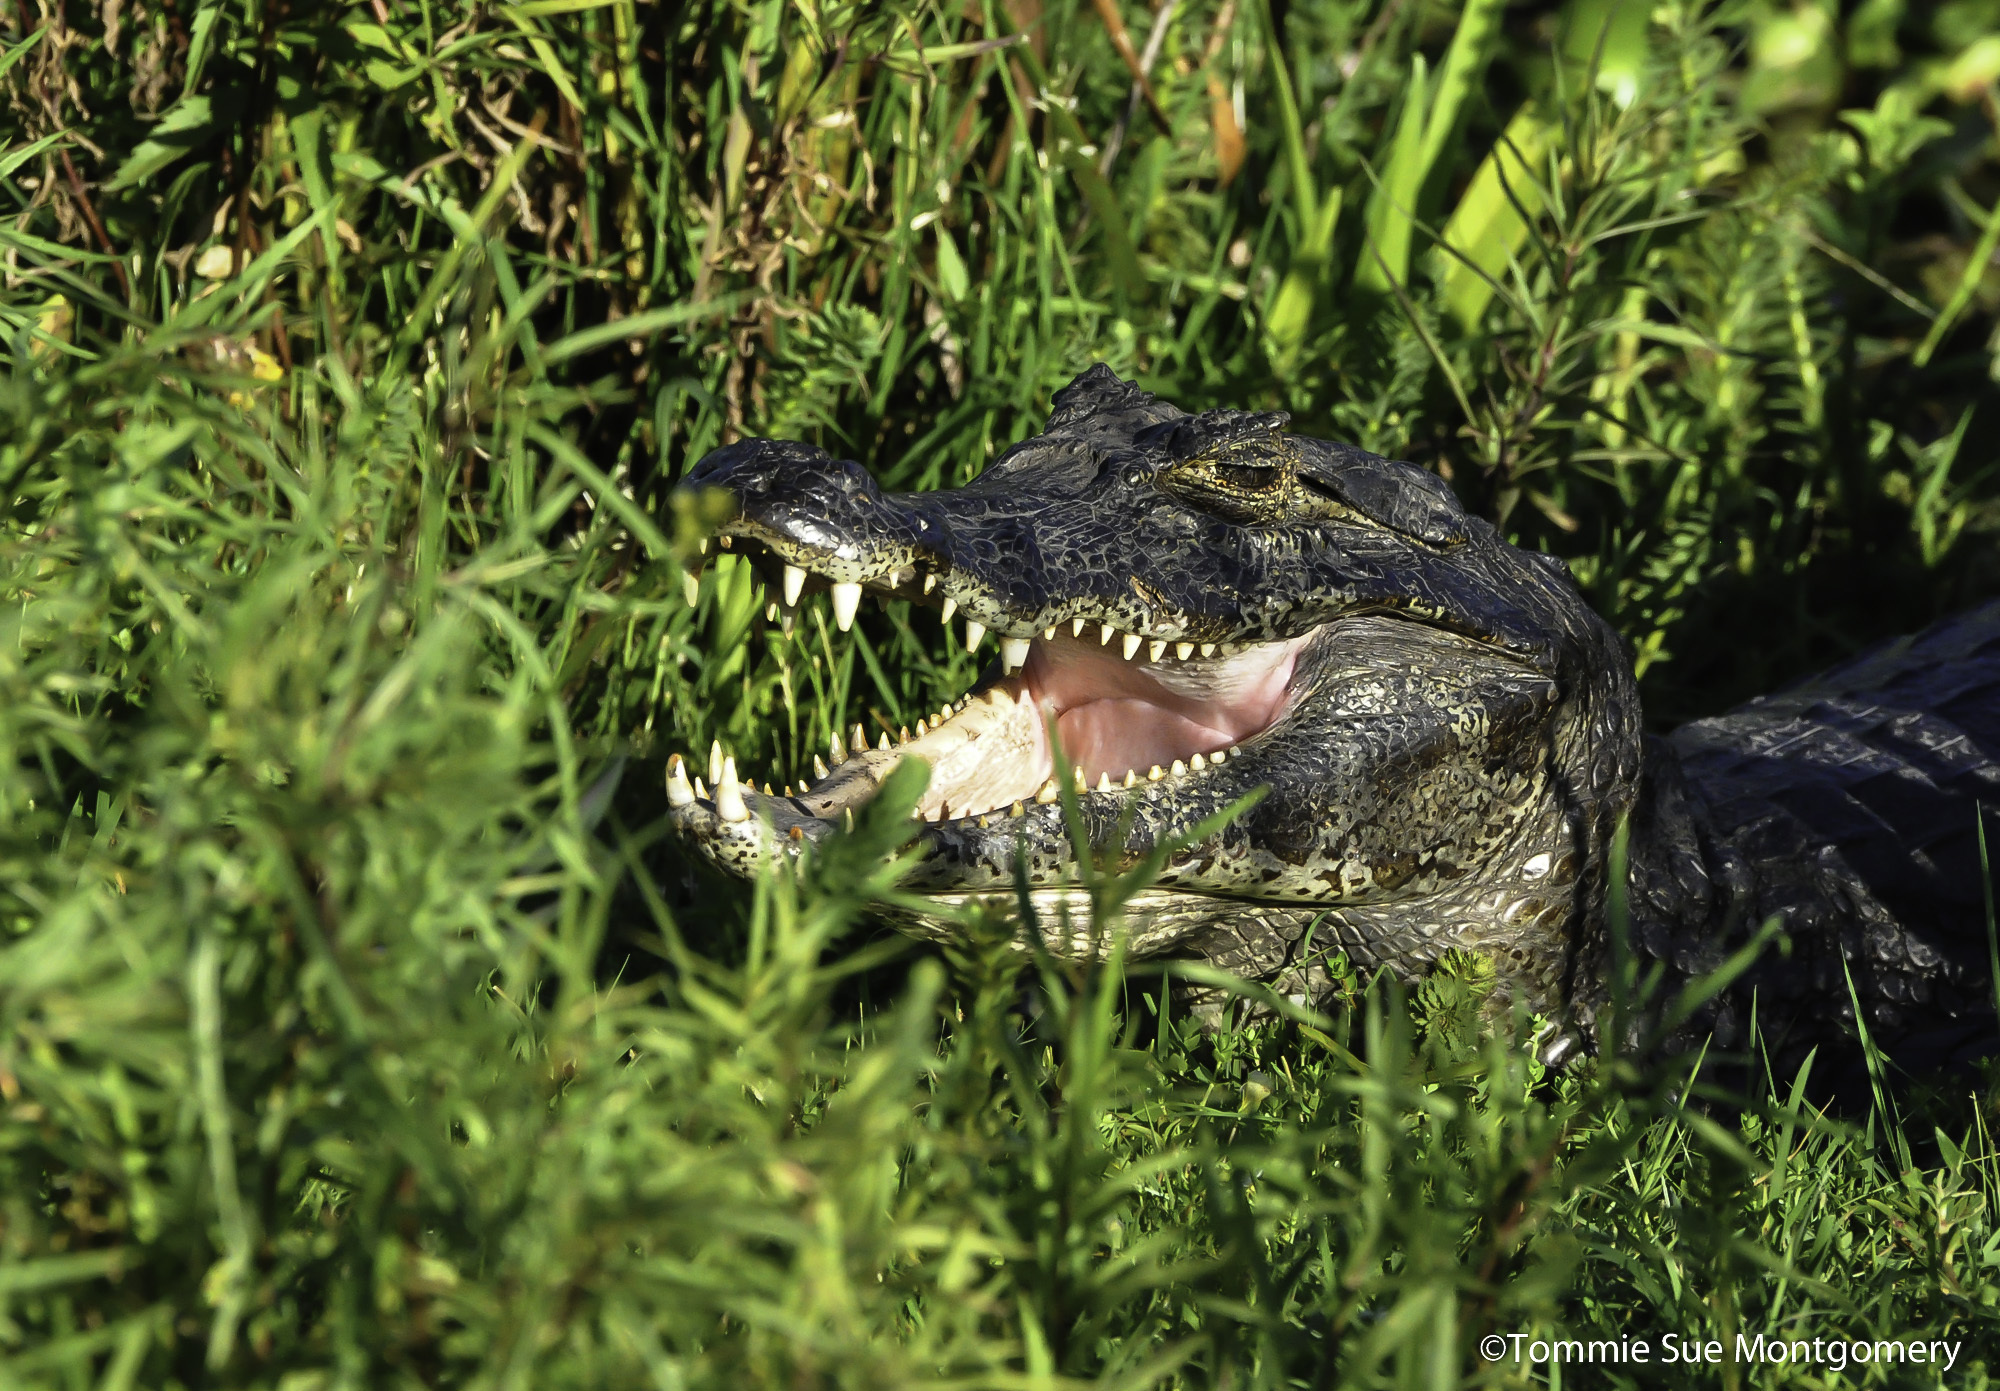 south american alligator